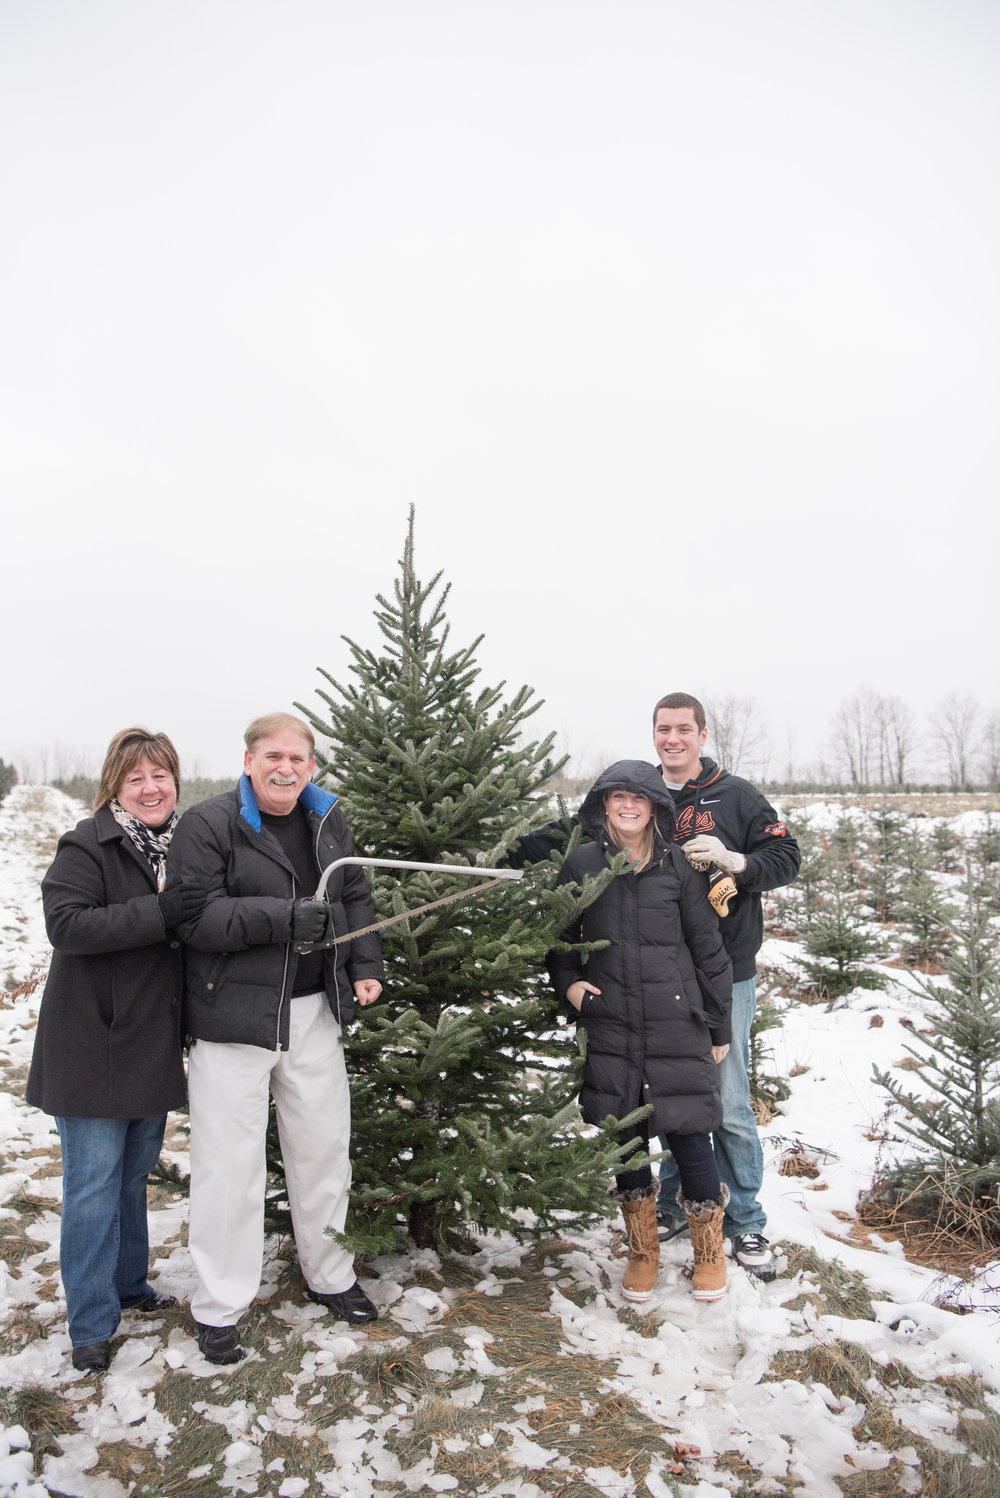 Cutting down the family christmas tree... don't let Dave fool you - Jordan did all the work!